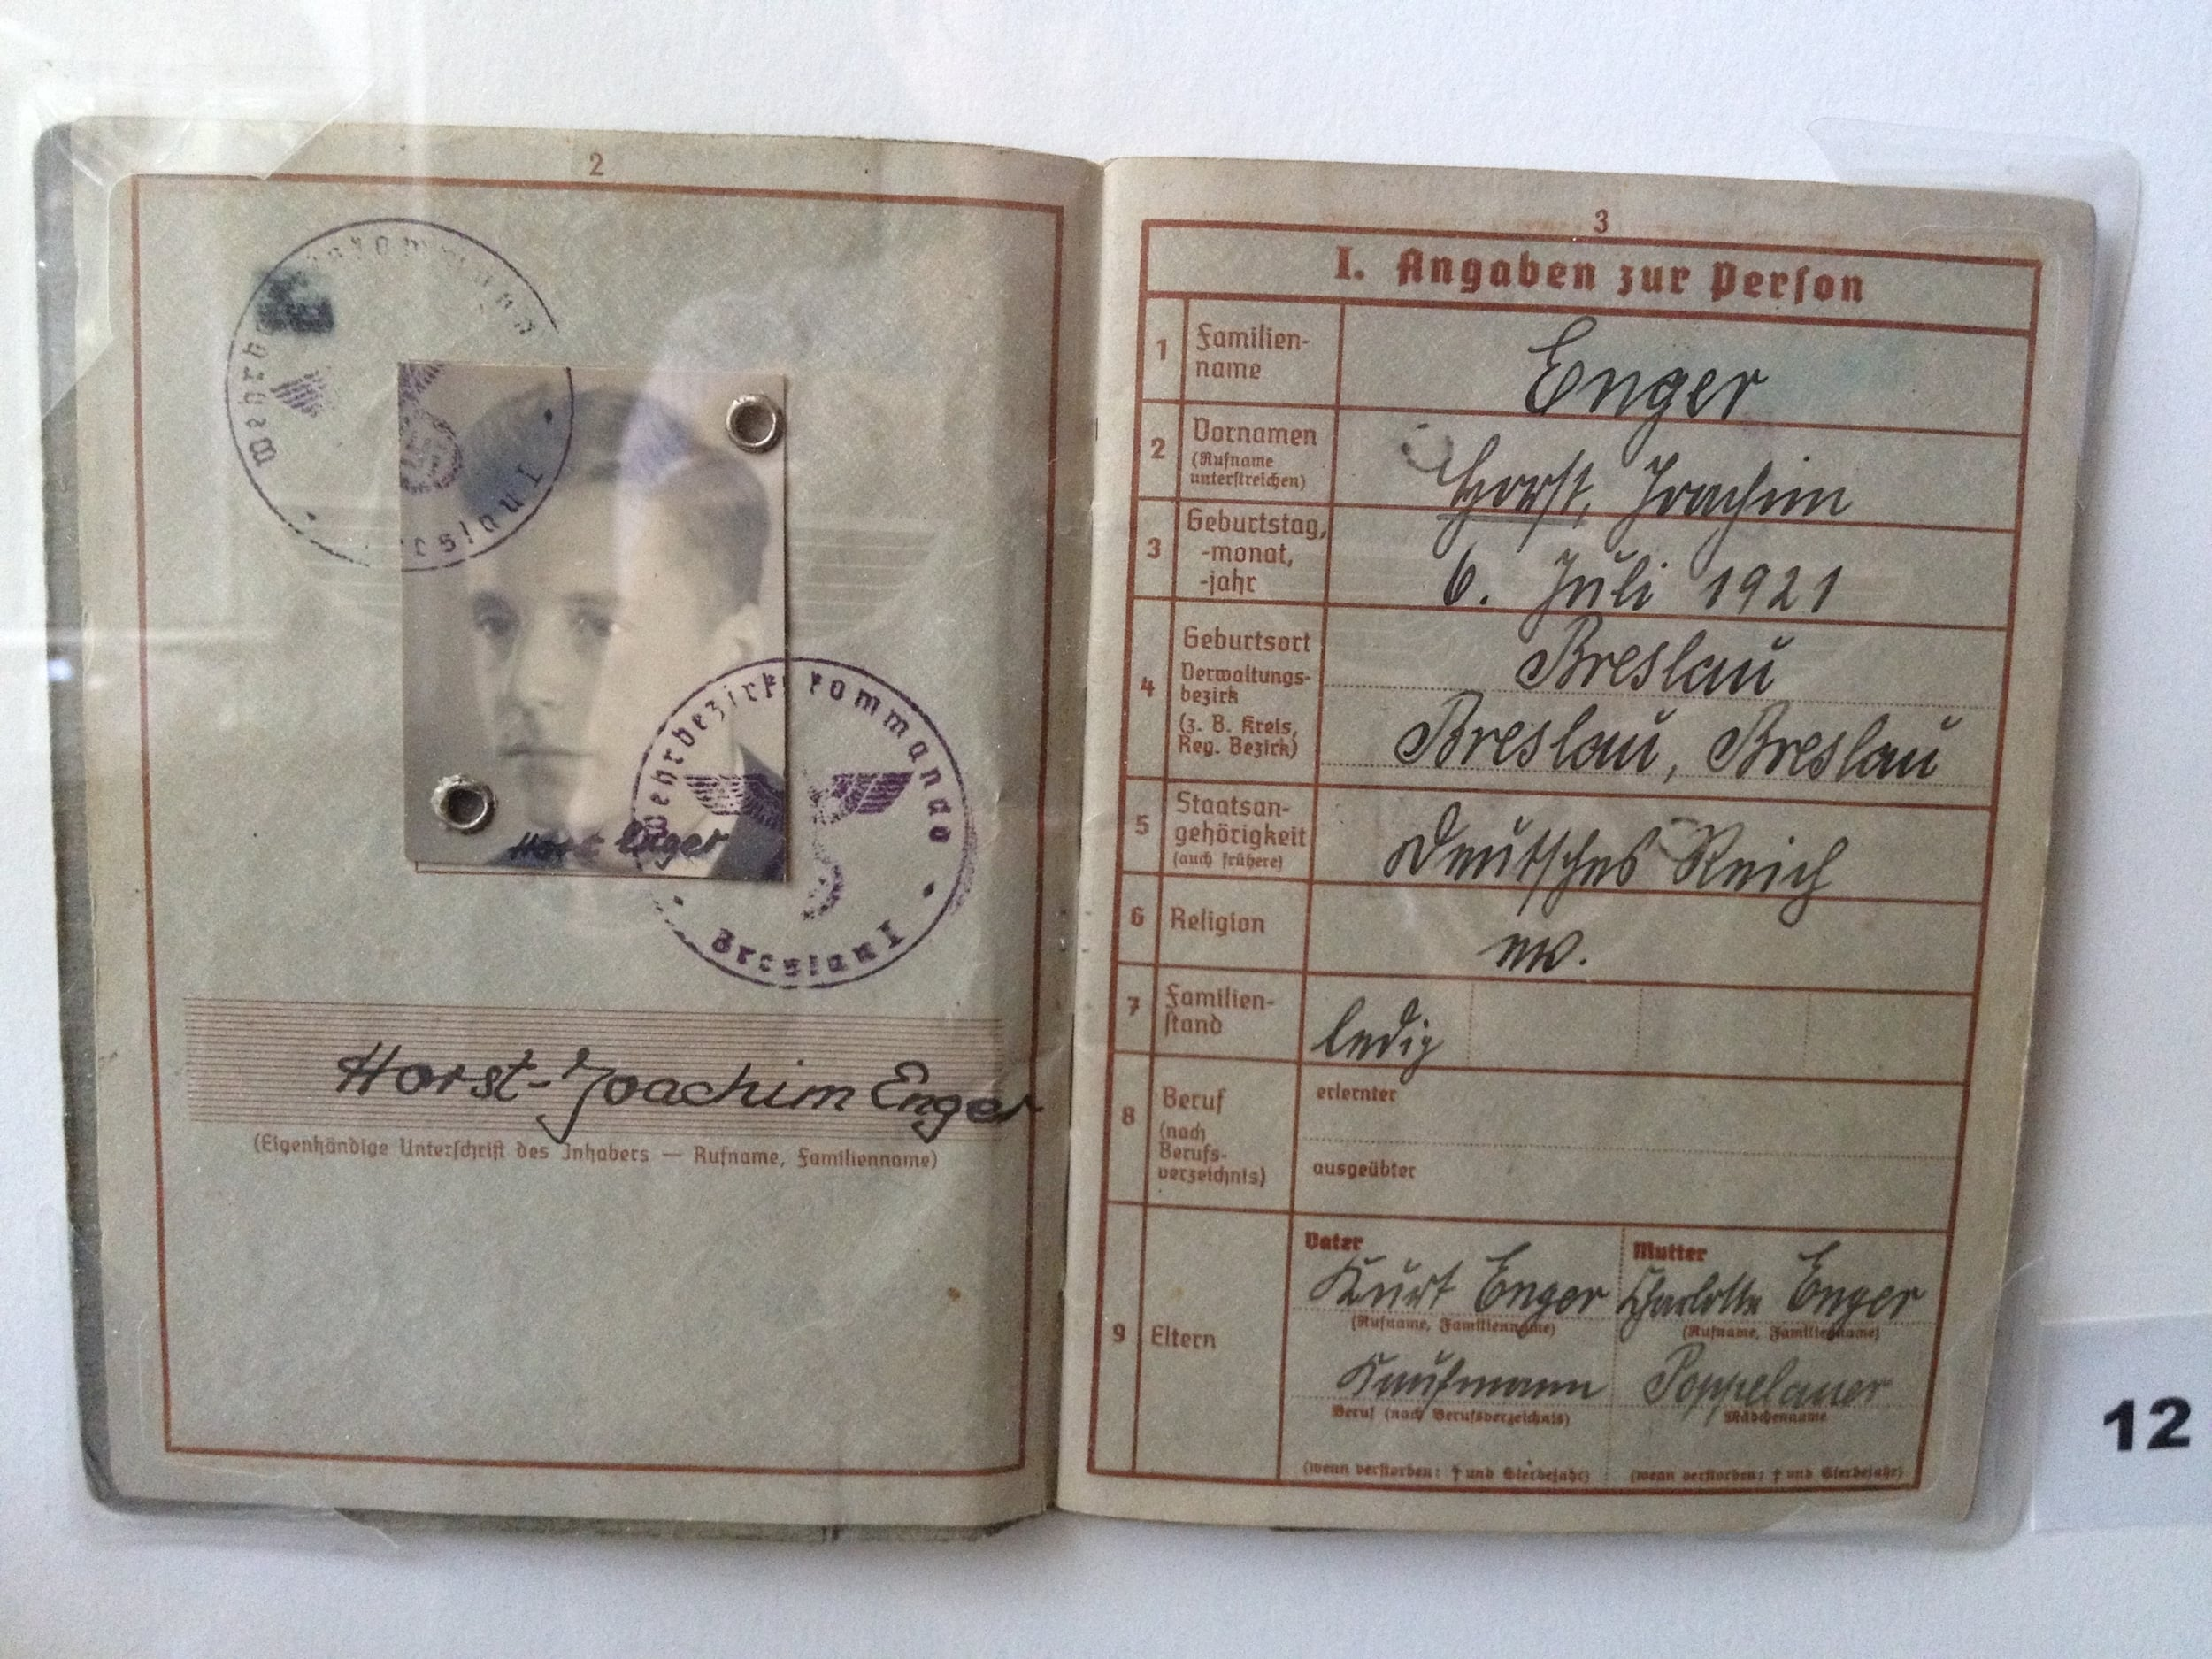 Nazi-period ID papers - the M in religion identifies him as a Mischling.